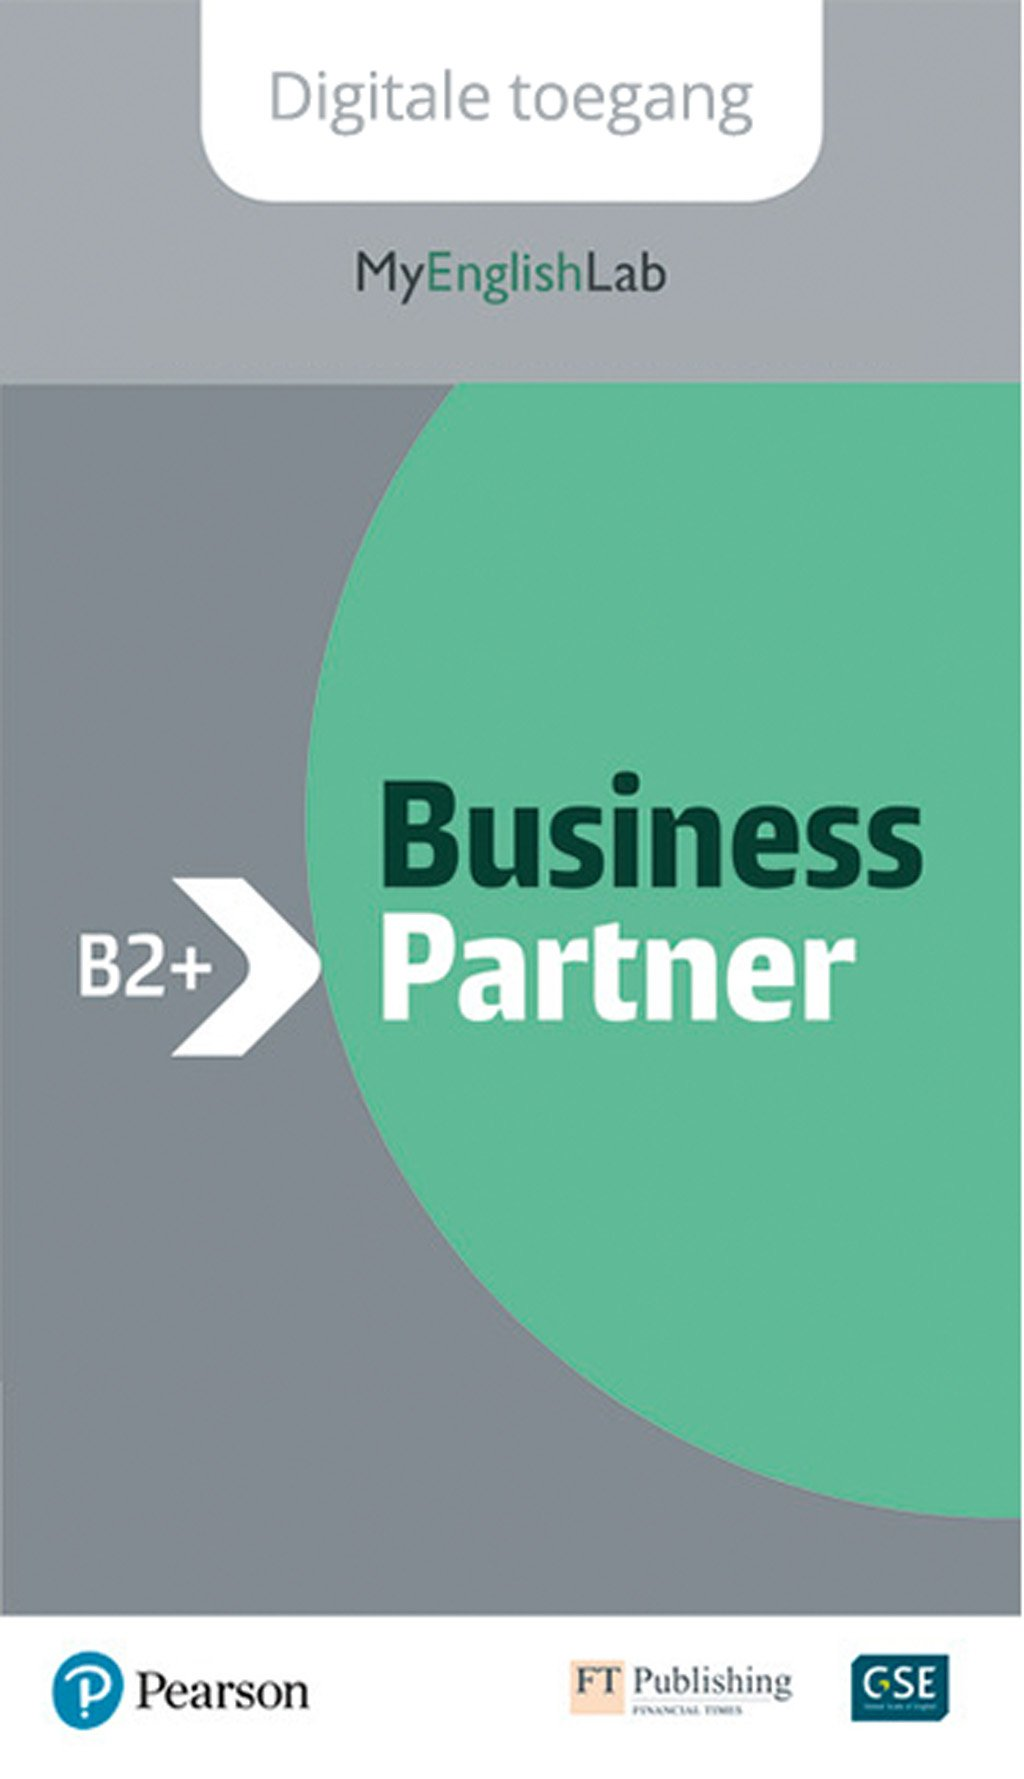 Business Partner B2+ MyEnglishLab